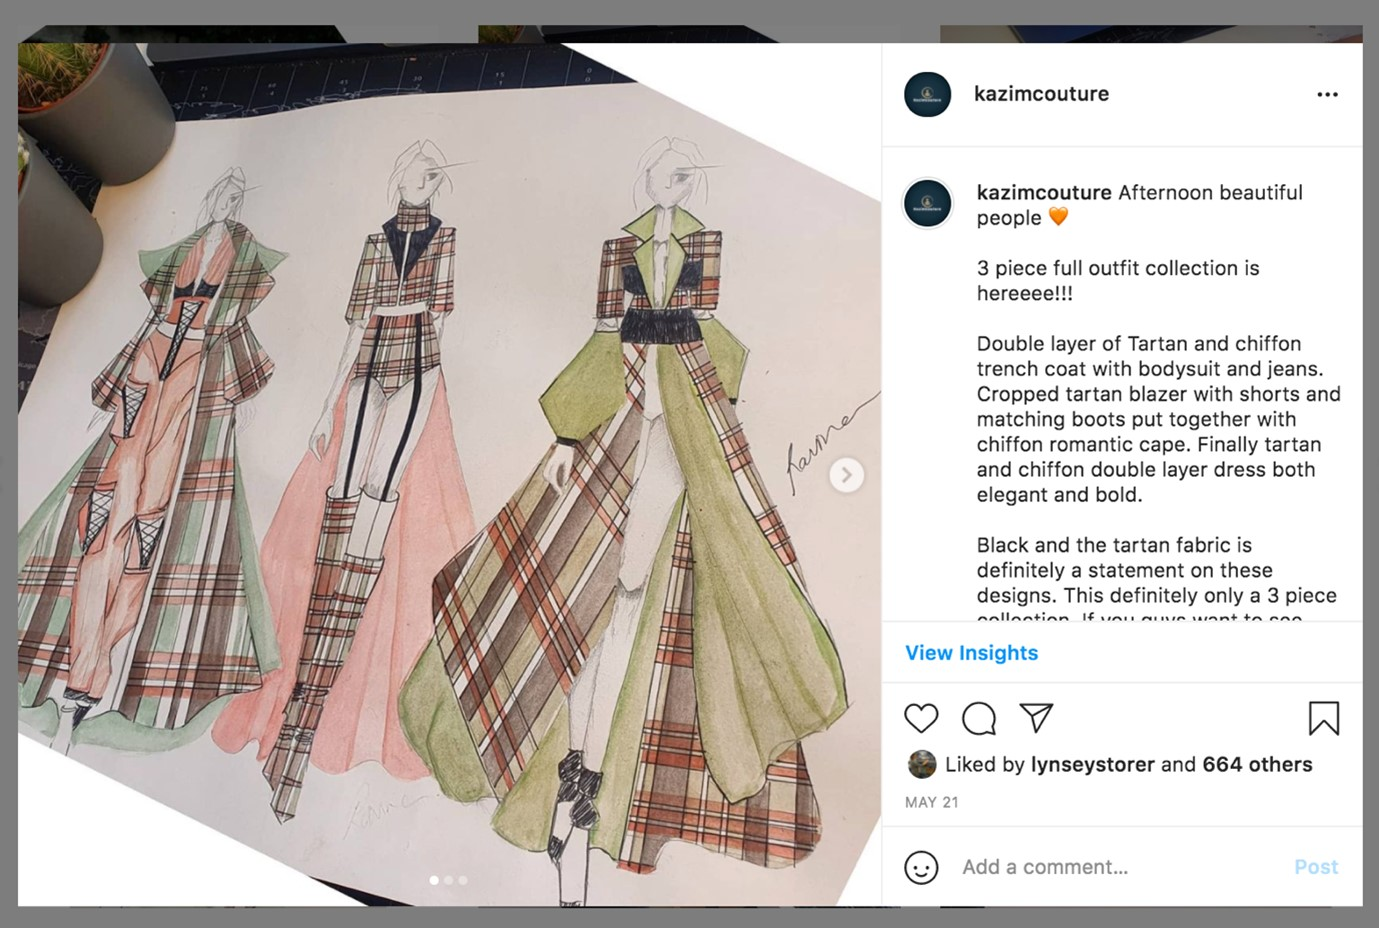 This is an image of Ravina's designs. Ravina has sketched some pink, green and brown tartan designs on a sketchbook. This imahe was taken from Ravina's Instagram.